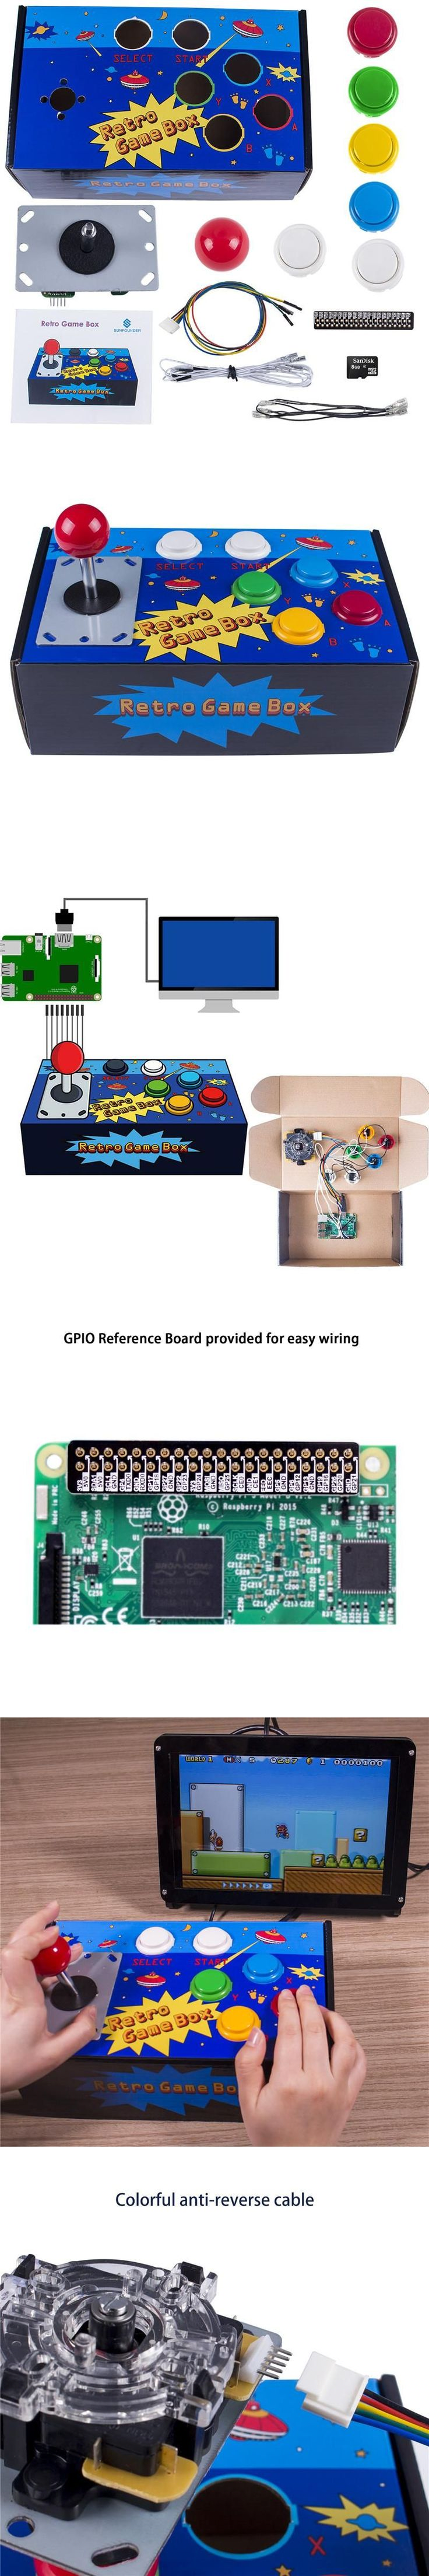 SunFounder Raspberry Pi Retro Game Box DIY Arcade Fighting Joystick Push Buttons Controller for RetroPie Raspberry Pi 3/2/B+